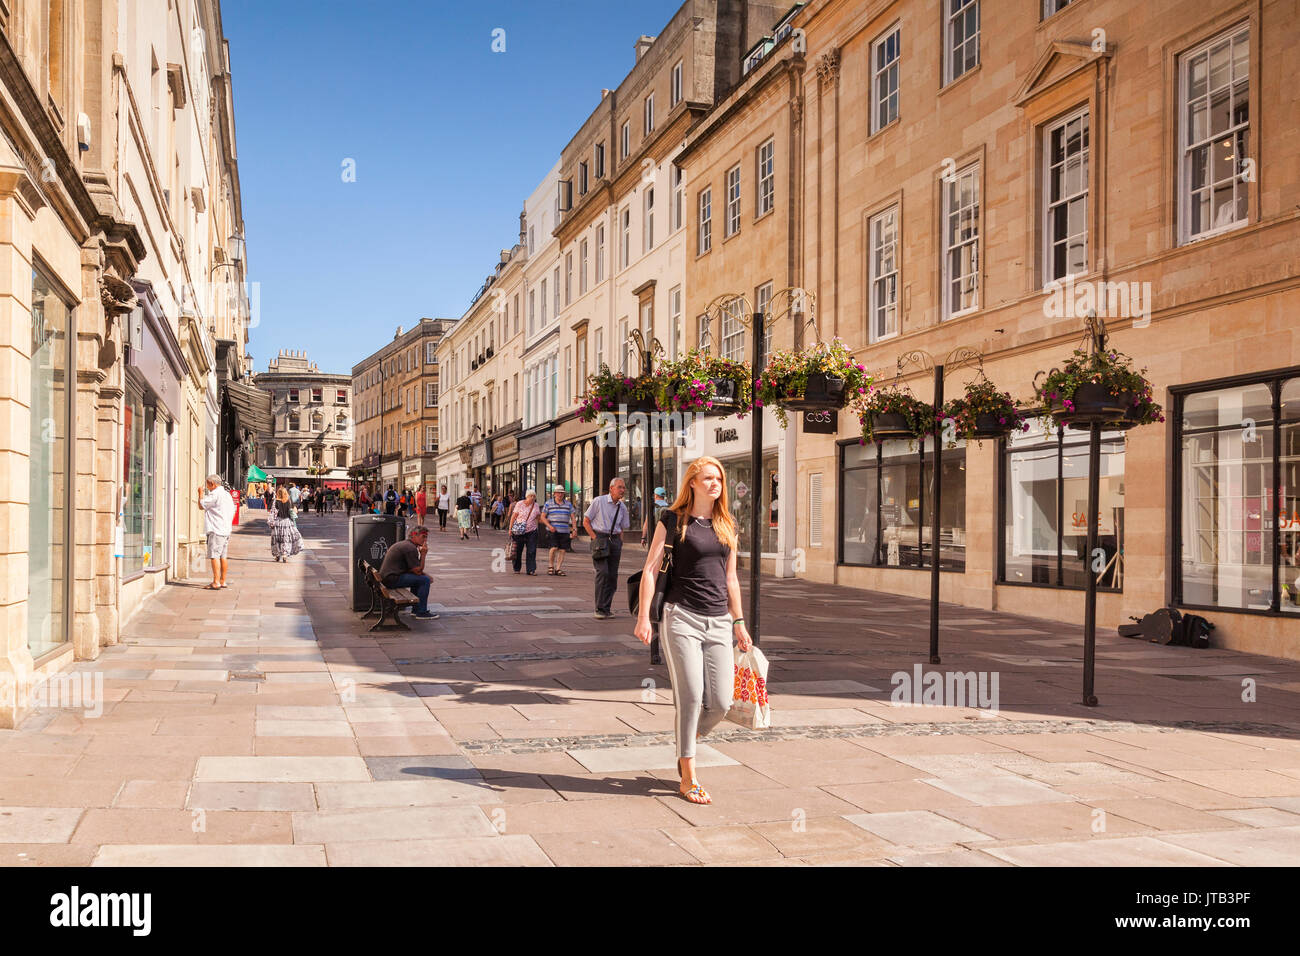 5 July 2017: Bath, Somerset, England, UK - Shopping in Union Street, in the city centre, on a beautiful summer day. Stock Photo